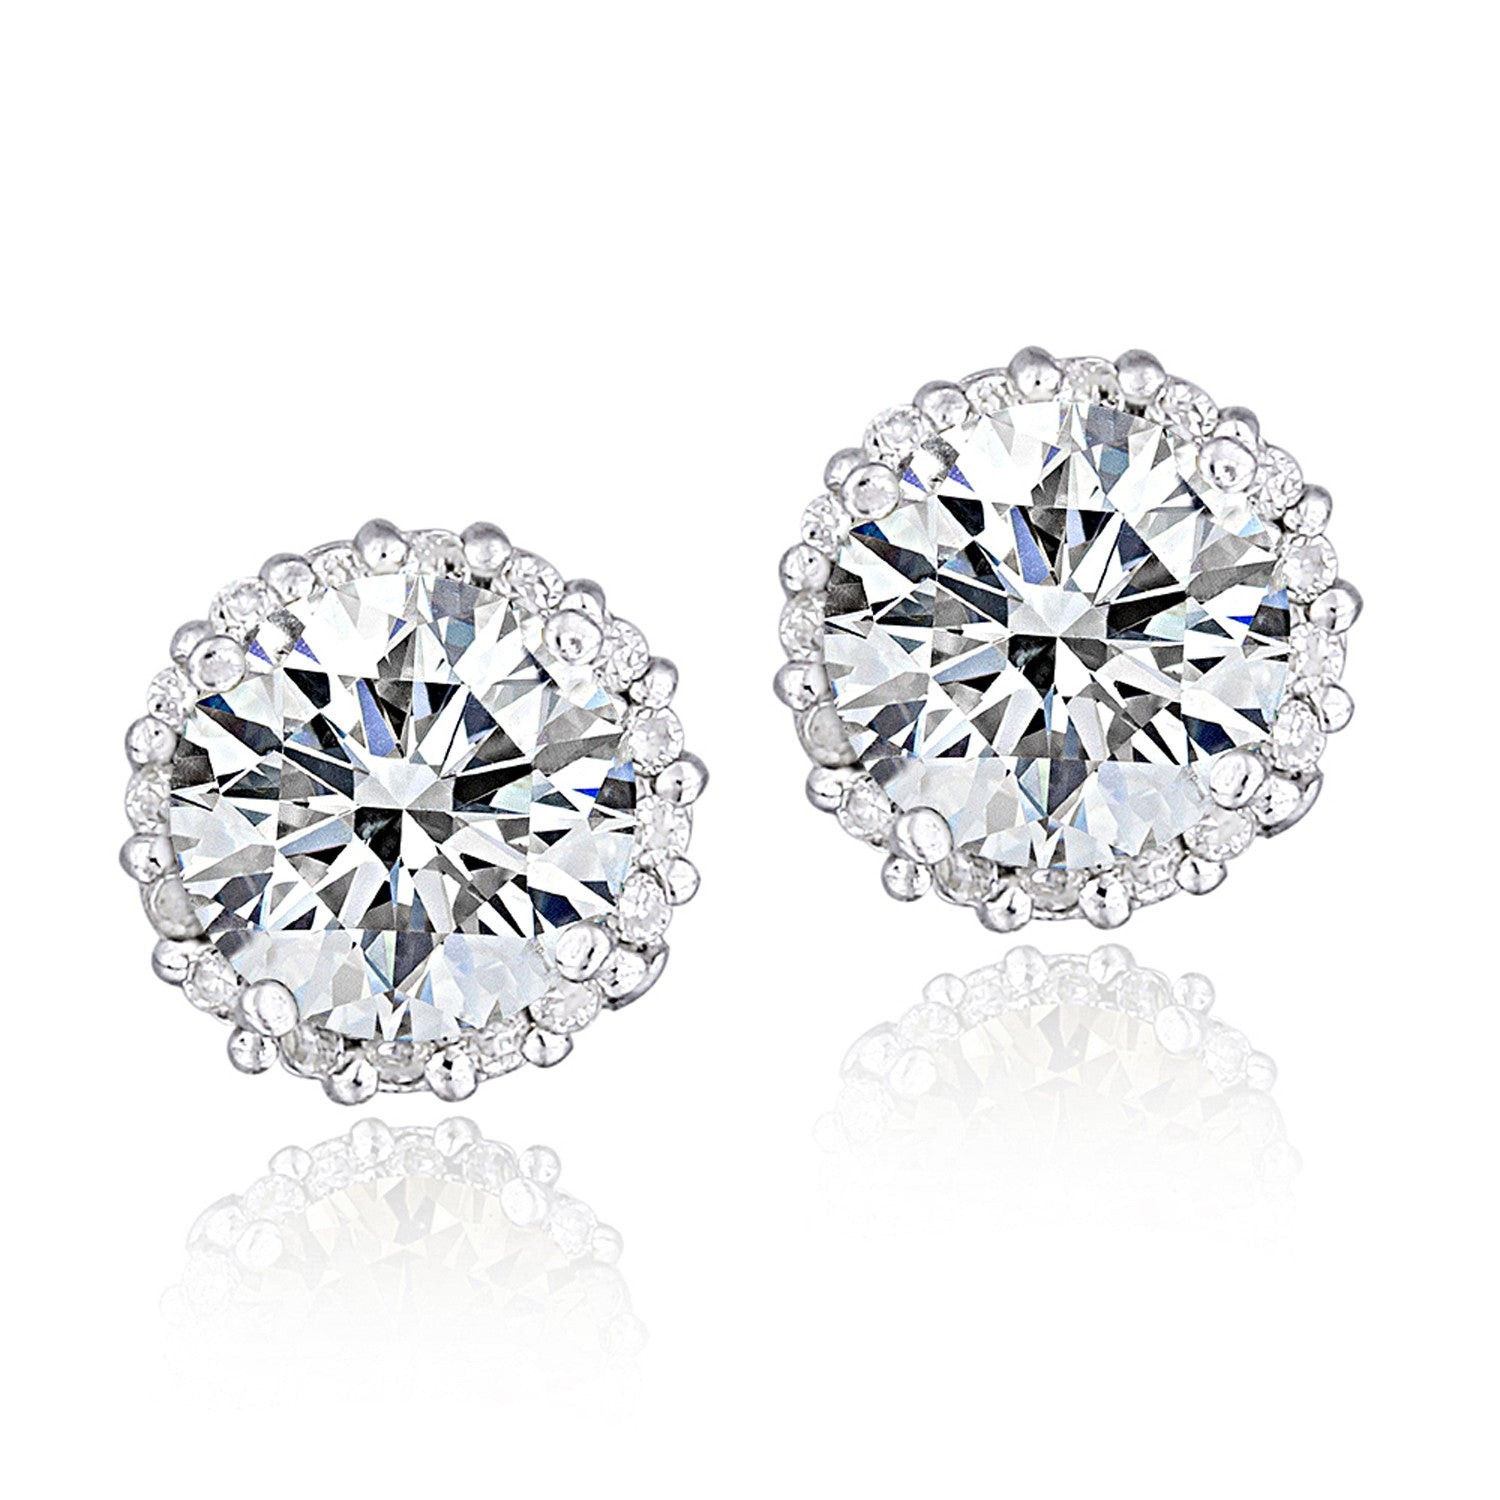 100 Facets Cubic Zirconia Halo Butterfly Clasp Stud Earrings - Platinum Plated